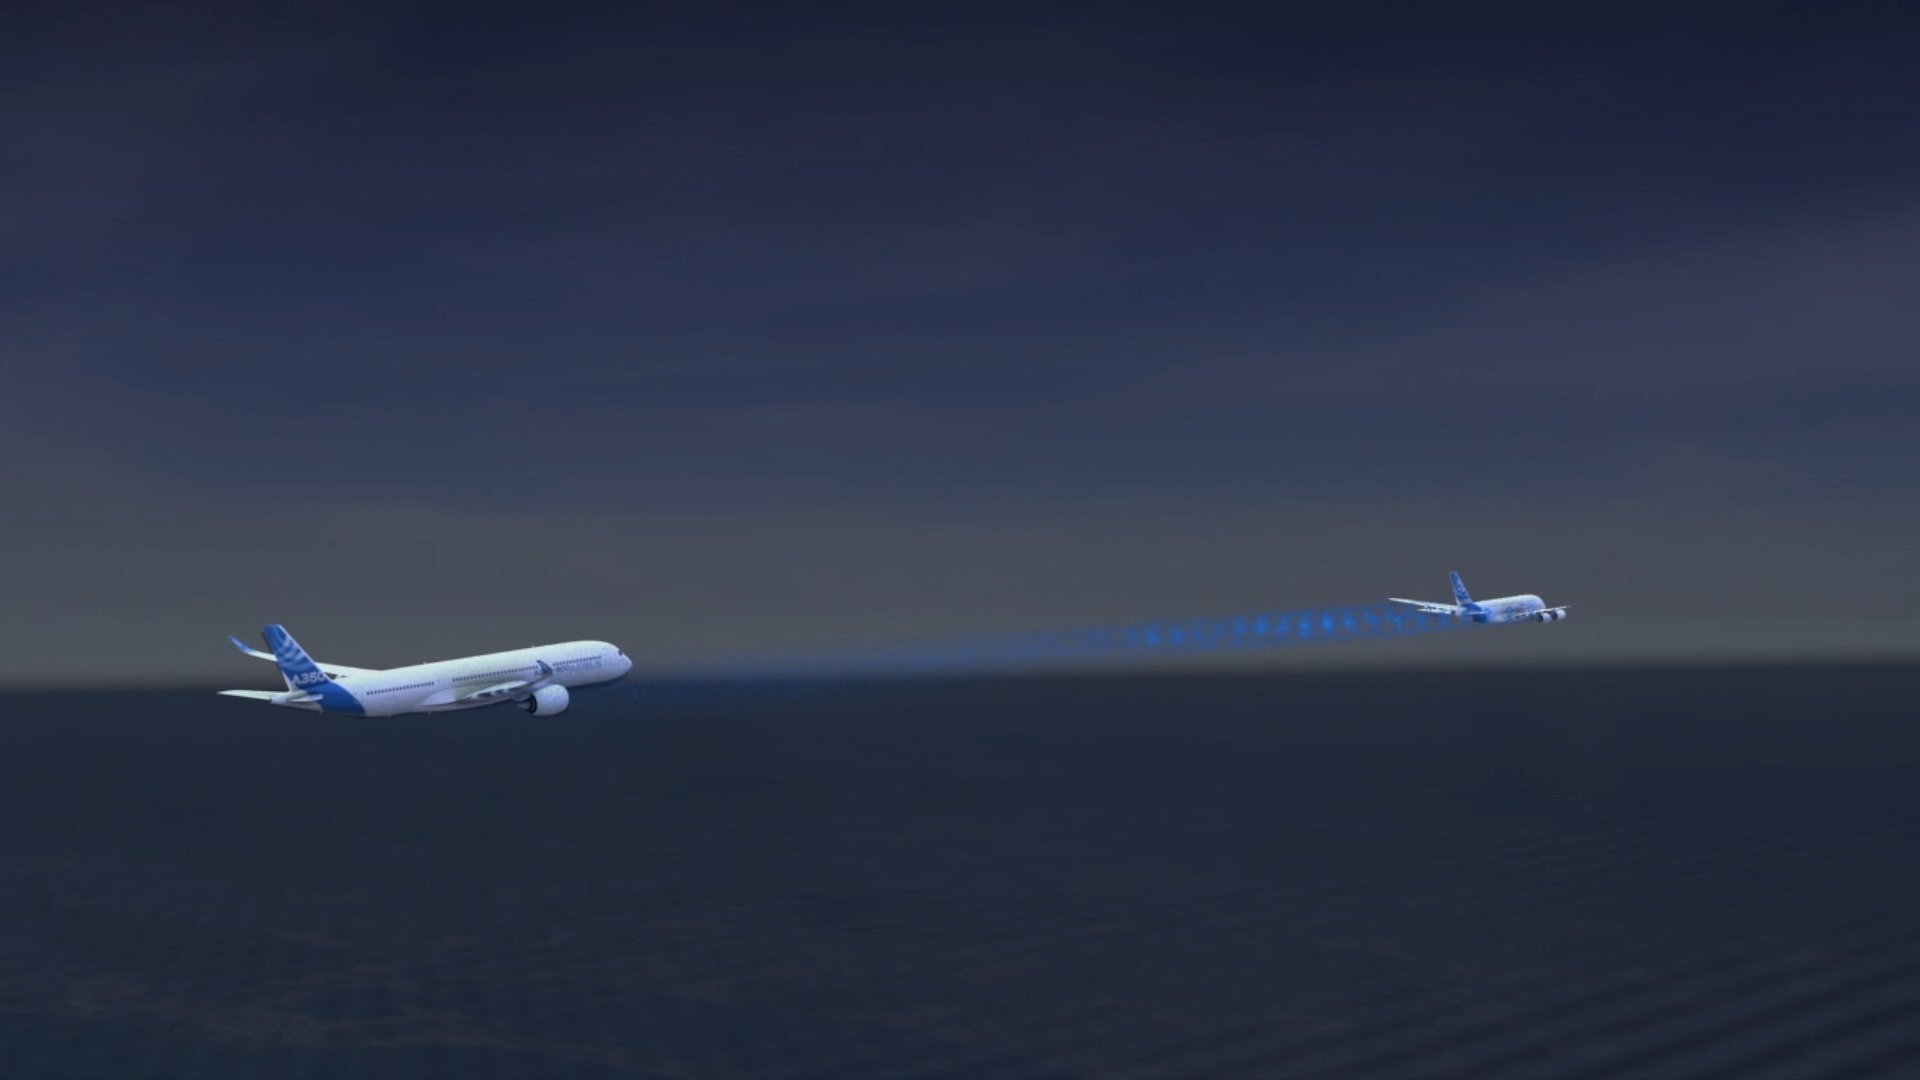 This flight demonstrator project aims to prove the technical, operational and economic viability of wake-energy retrieval for commercial aircraft. This collaborative activity could make a significant impact on aircraft's environmental performance, including potential fuel savings of 5-10% per trip.